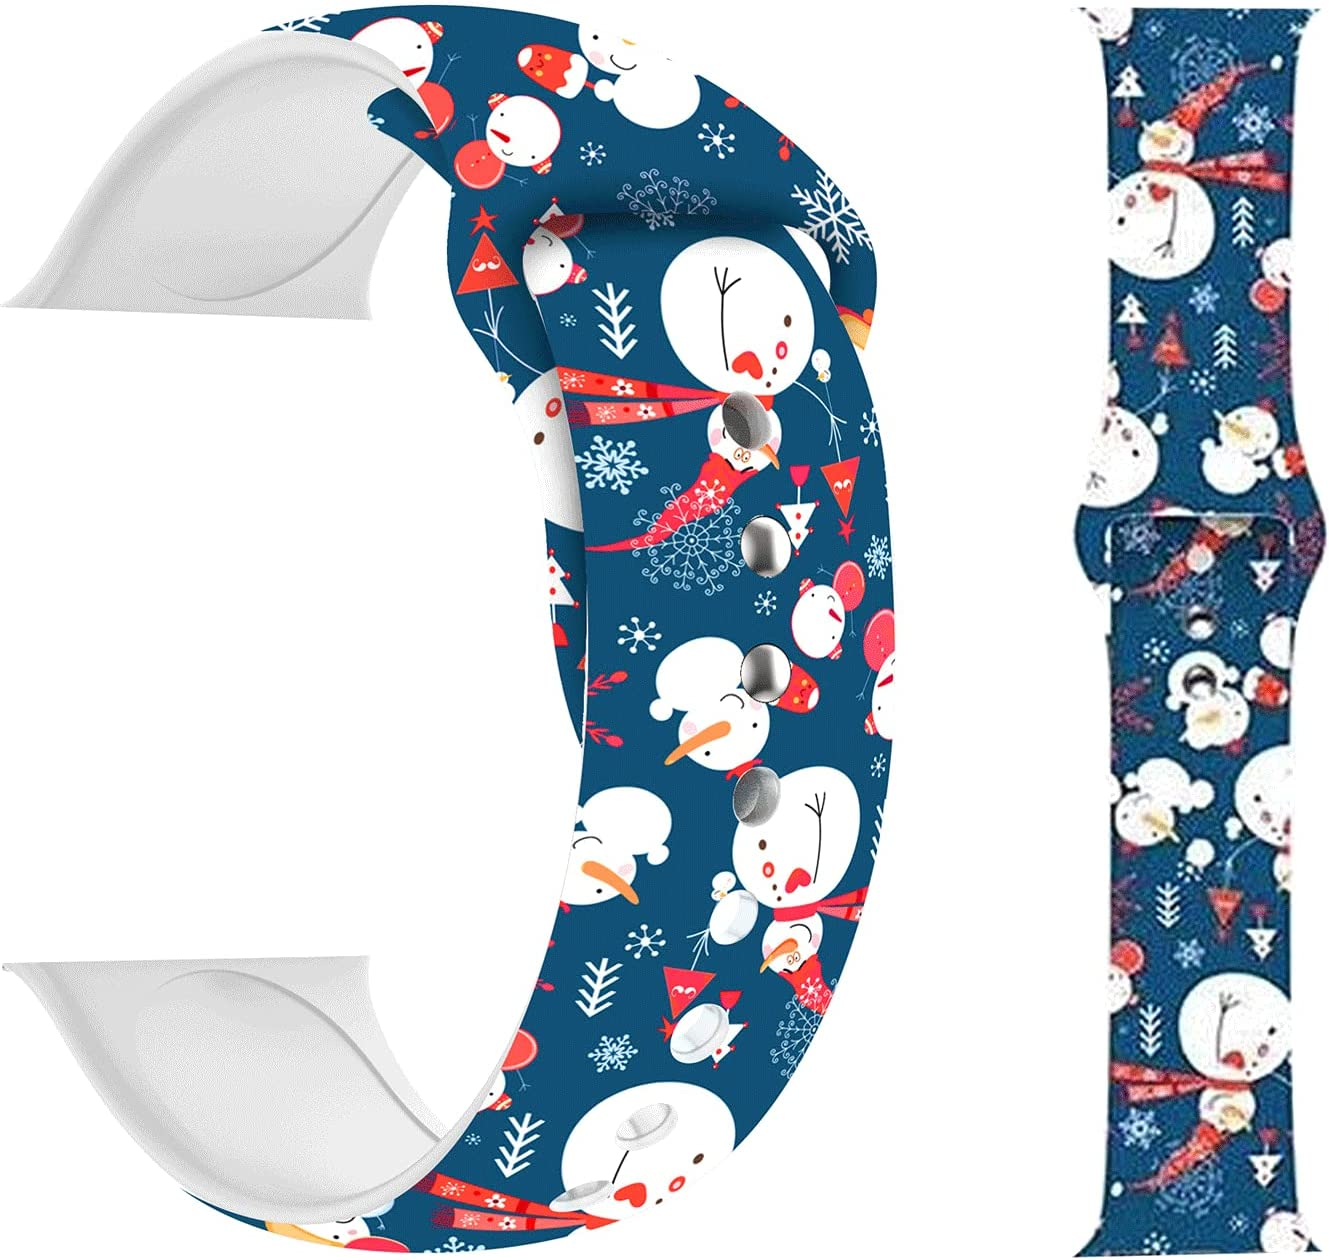 HYHMXB Chic Breathable Christmas Bands Compatible for Apple Watach 38mm 40mm, Grade Soft Silicone Sports Wristband Strap for iWatch SE & Series 6/5/4/3/2/1 (Snowman Blue)